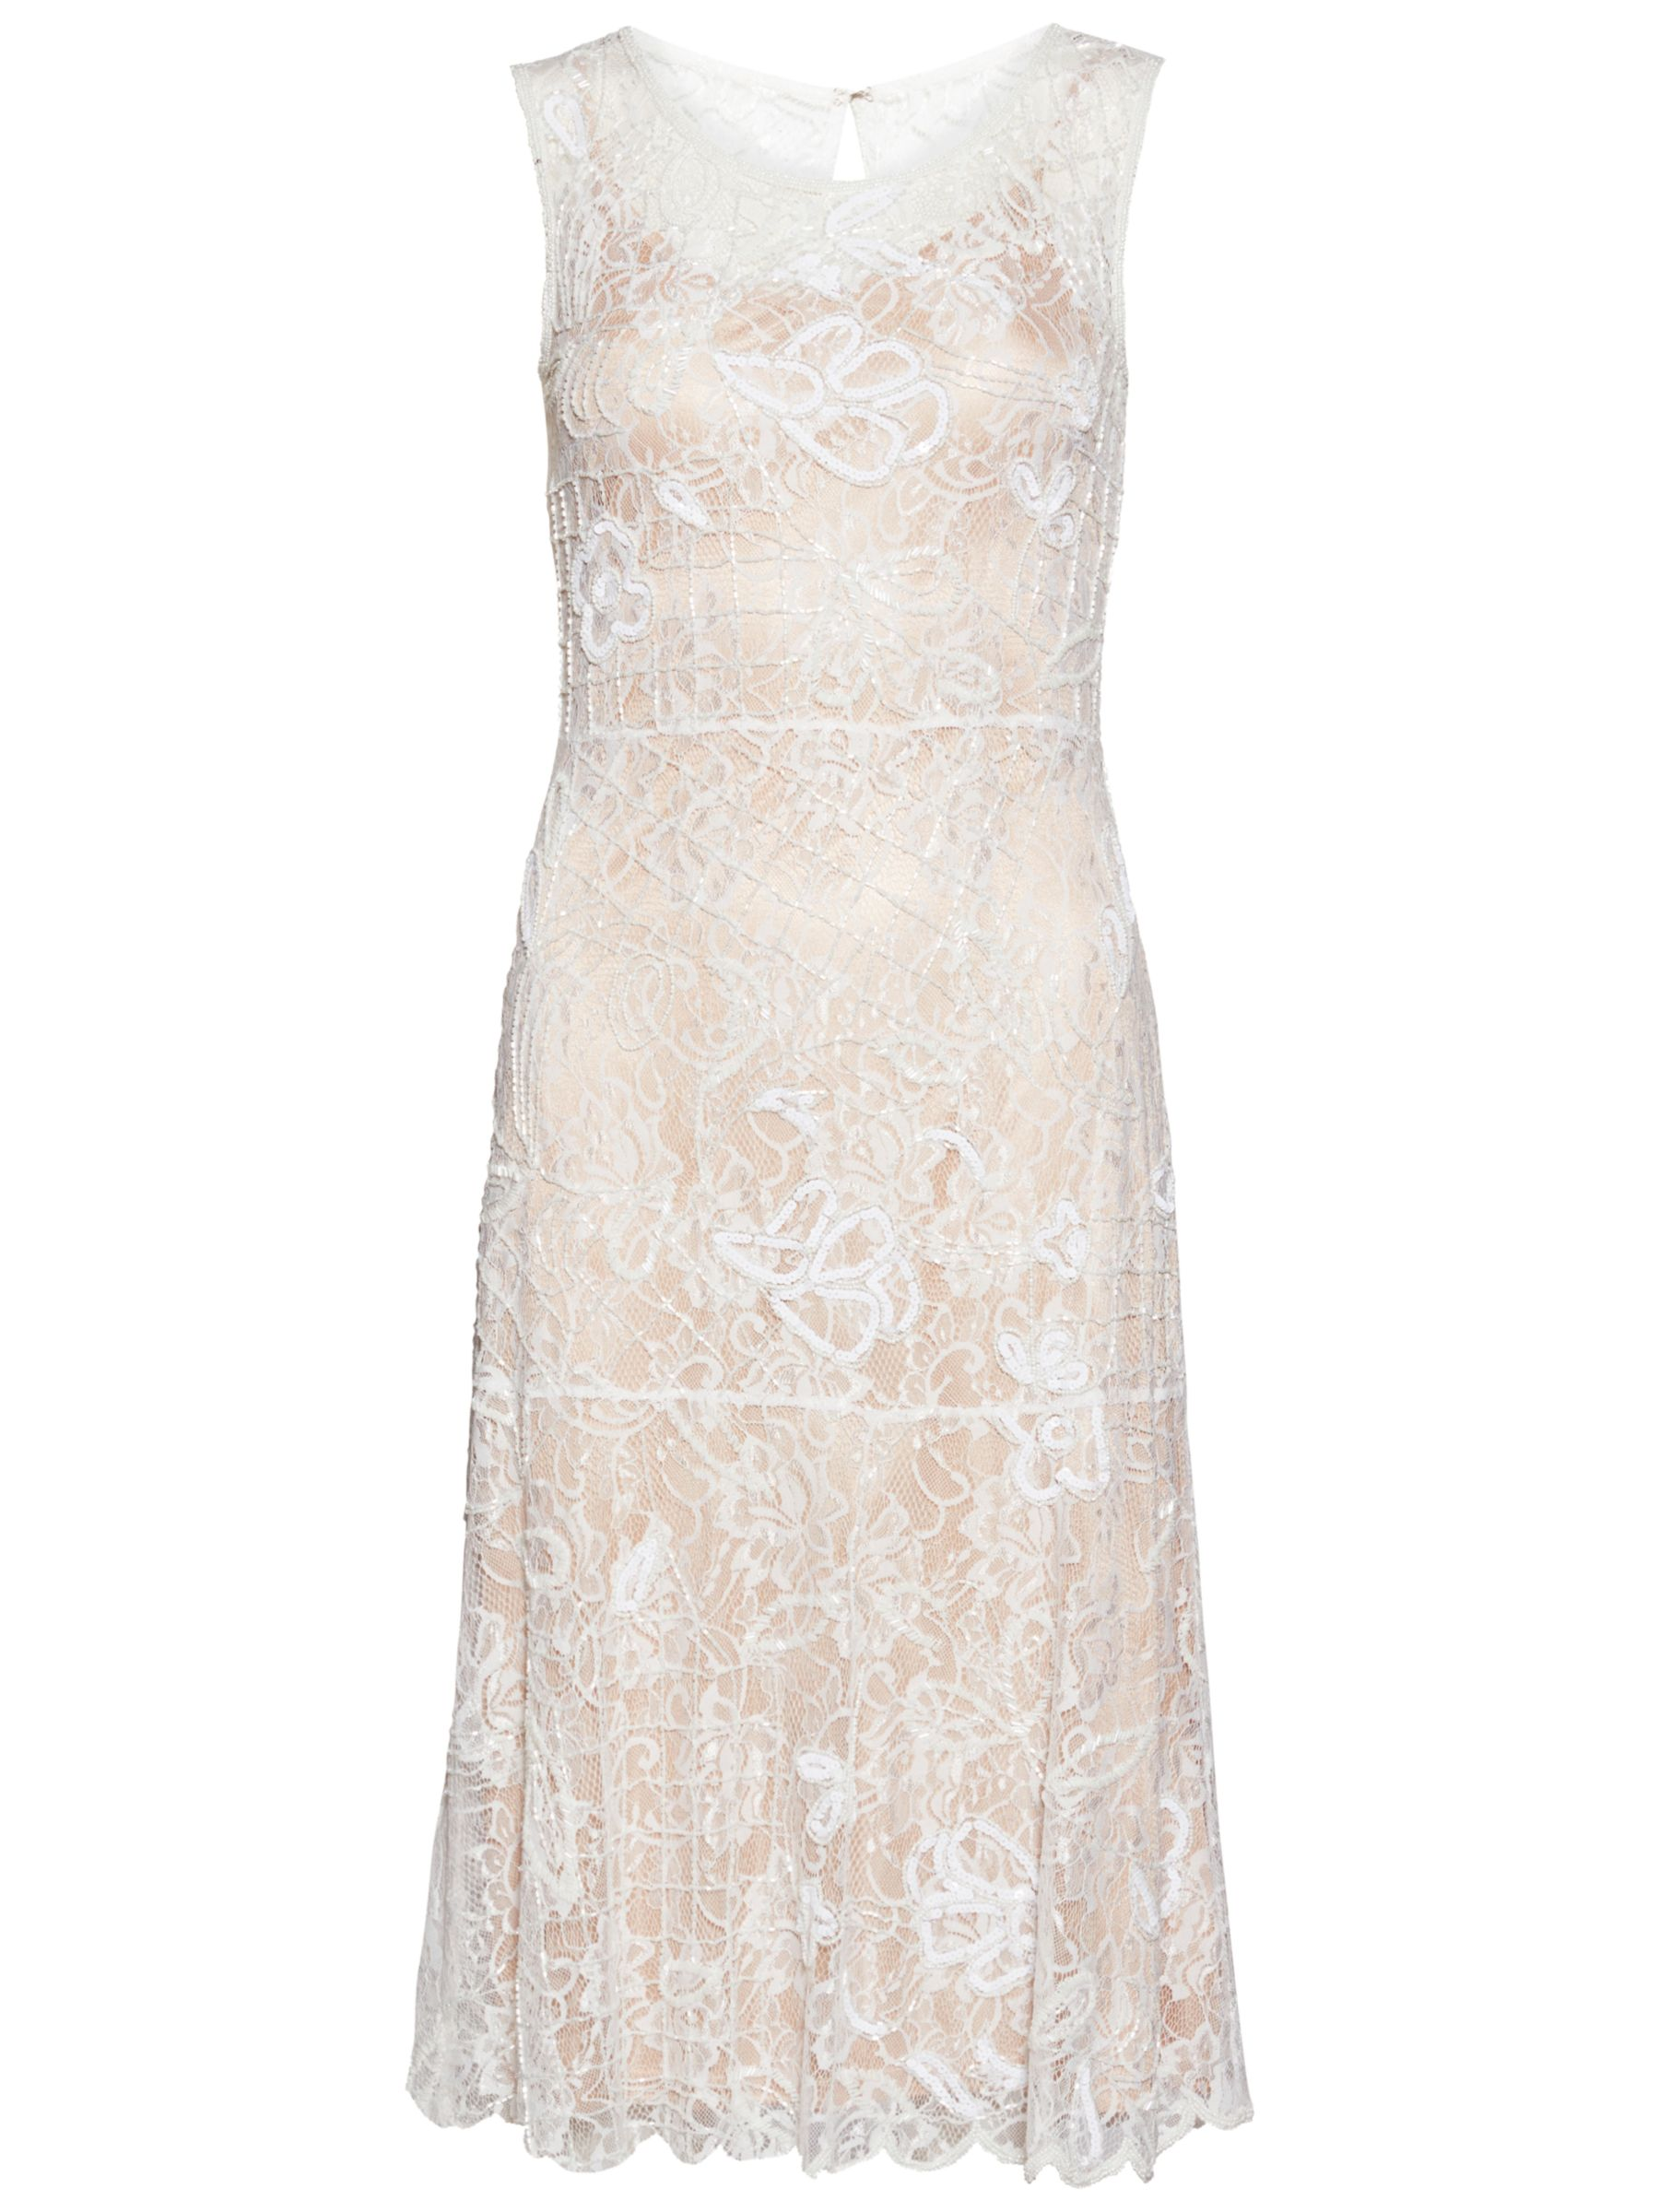 Fun 1920s Flapper Dresses & Quality Flapper Costumes Gina Bacconi Beaded Lace Dress £340.00 AT vintagedancer.com